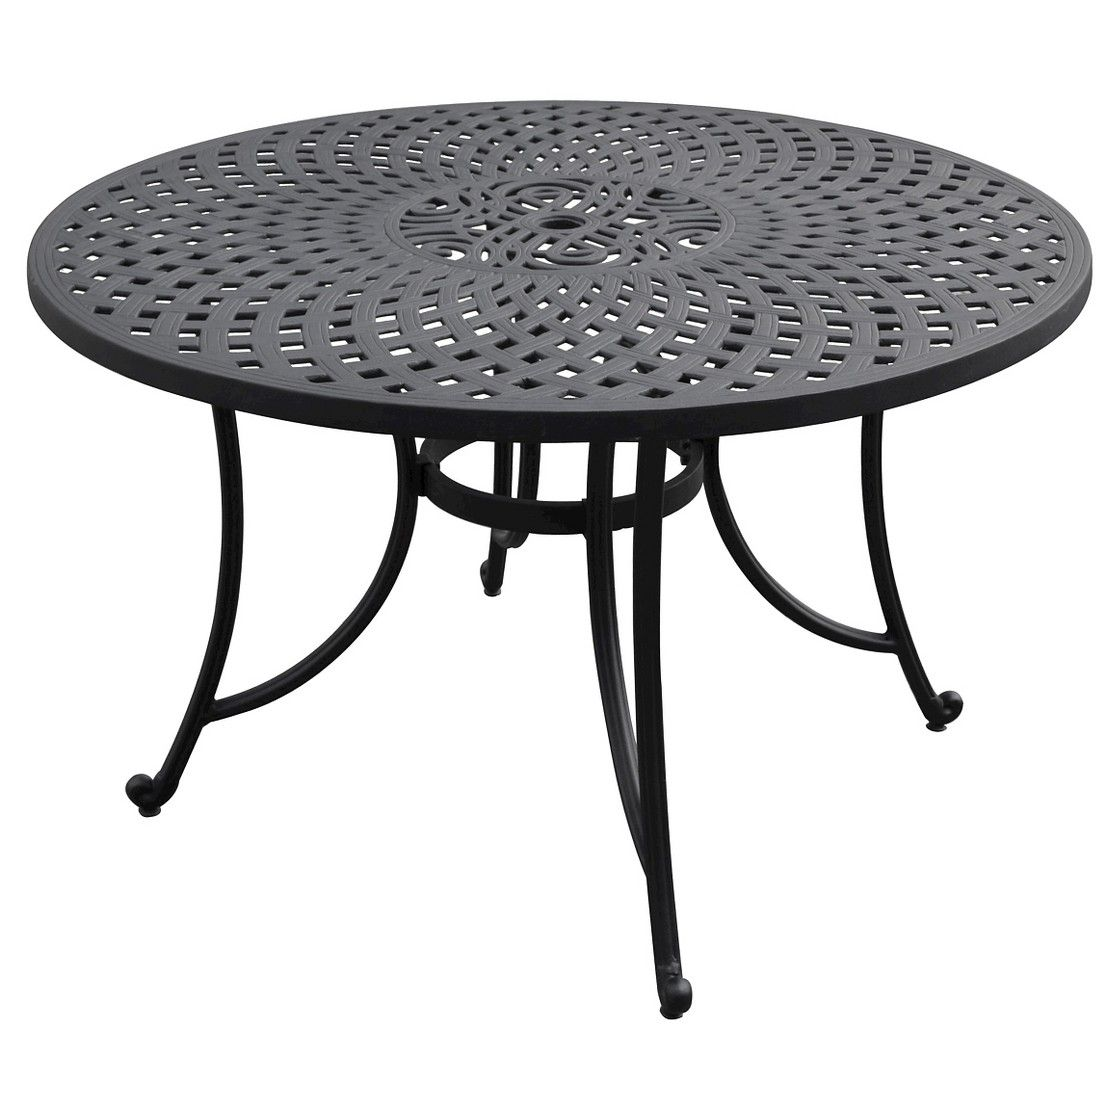 Aluminum Dining Table - Black